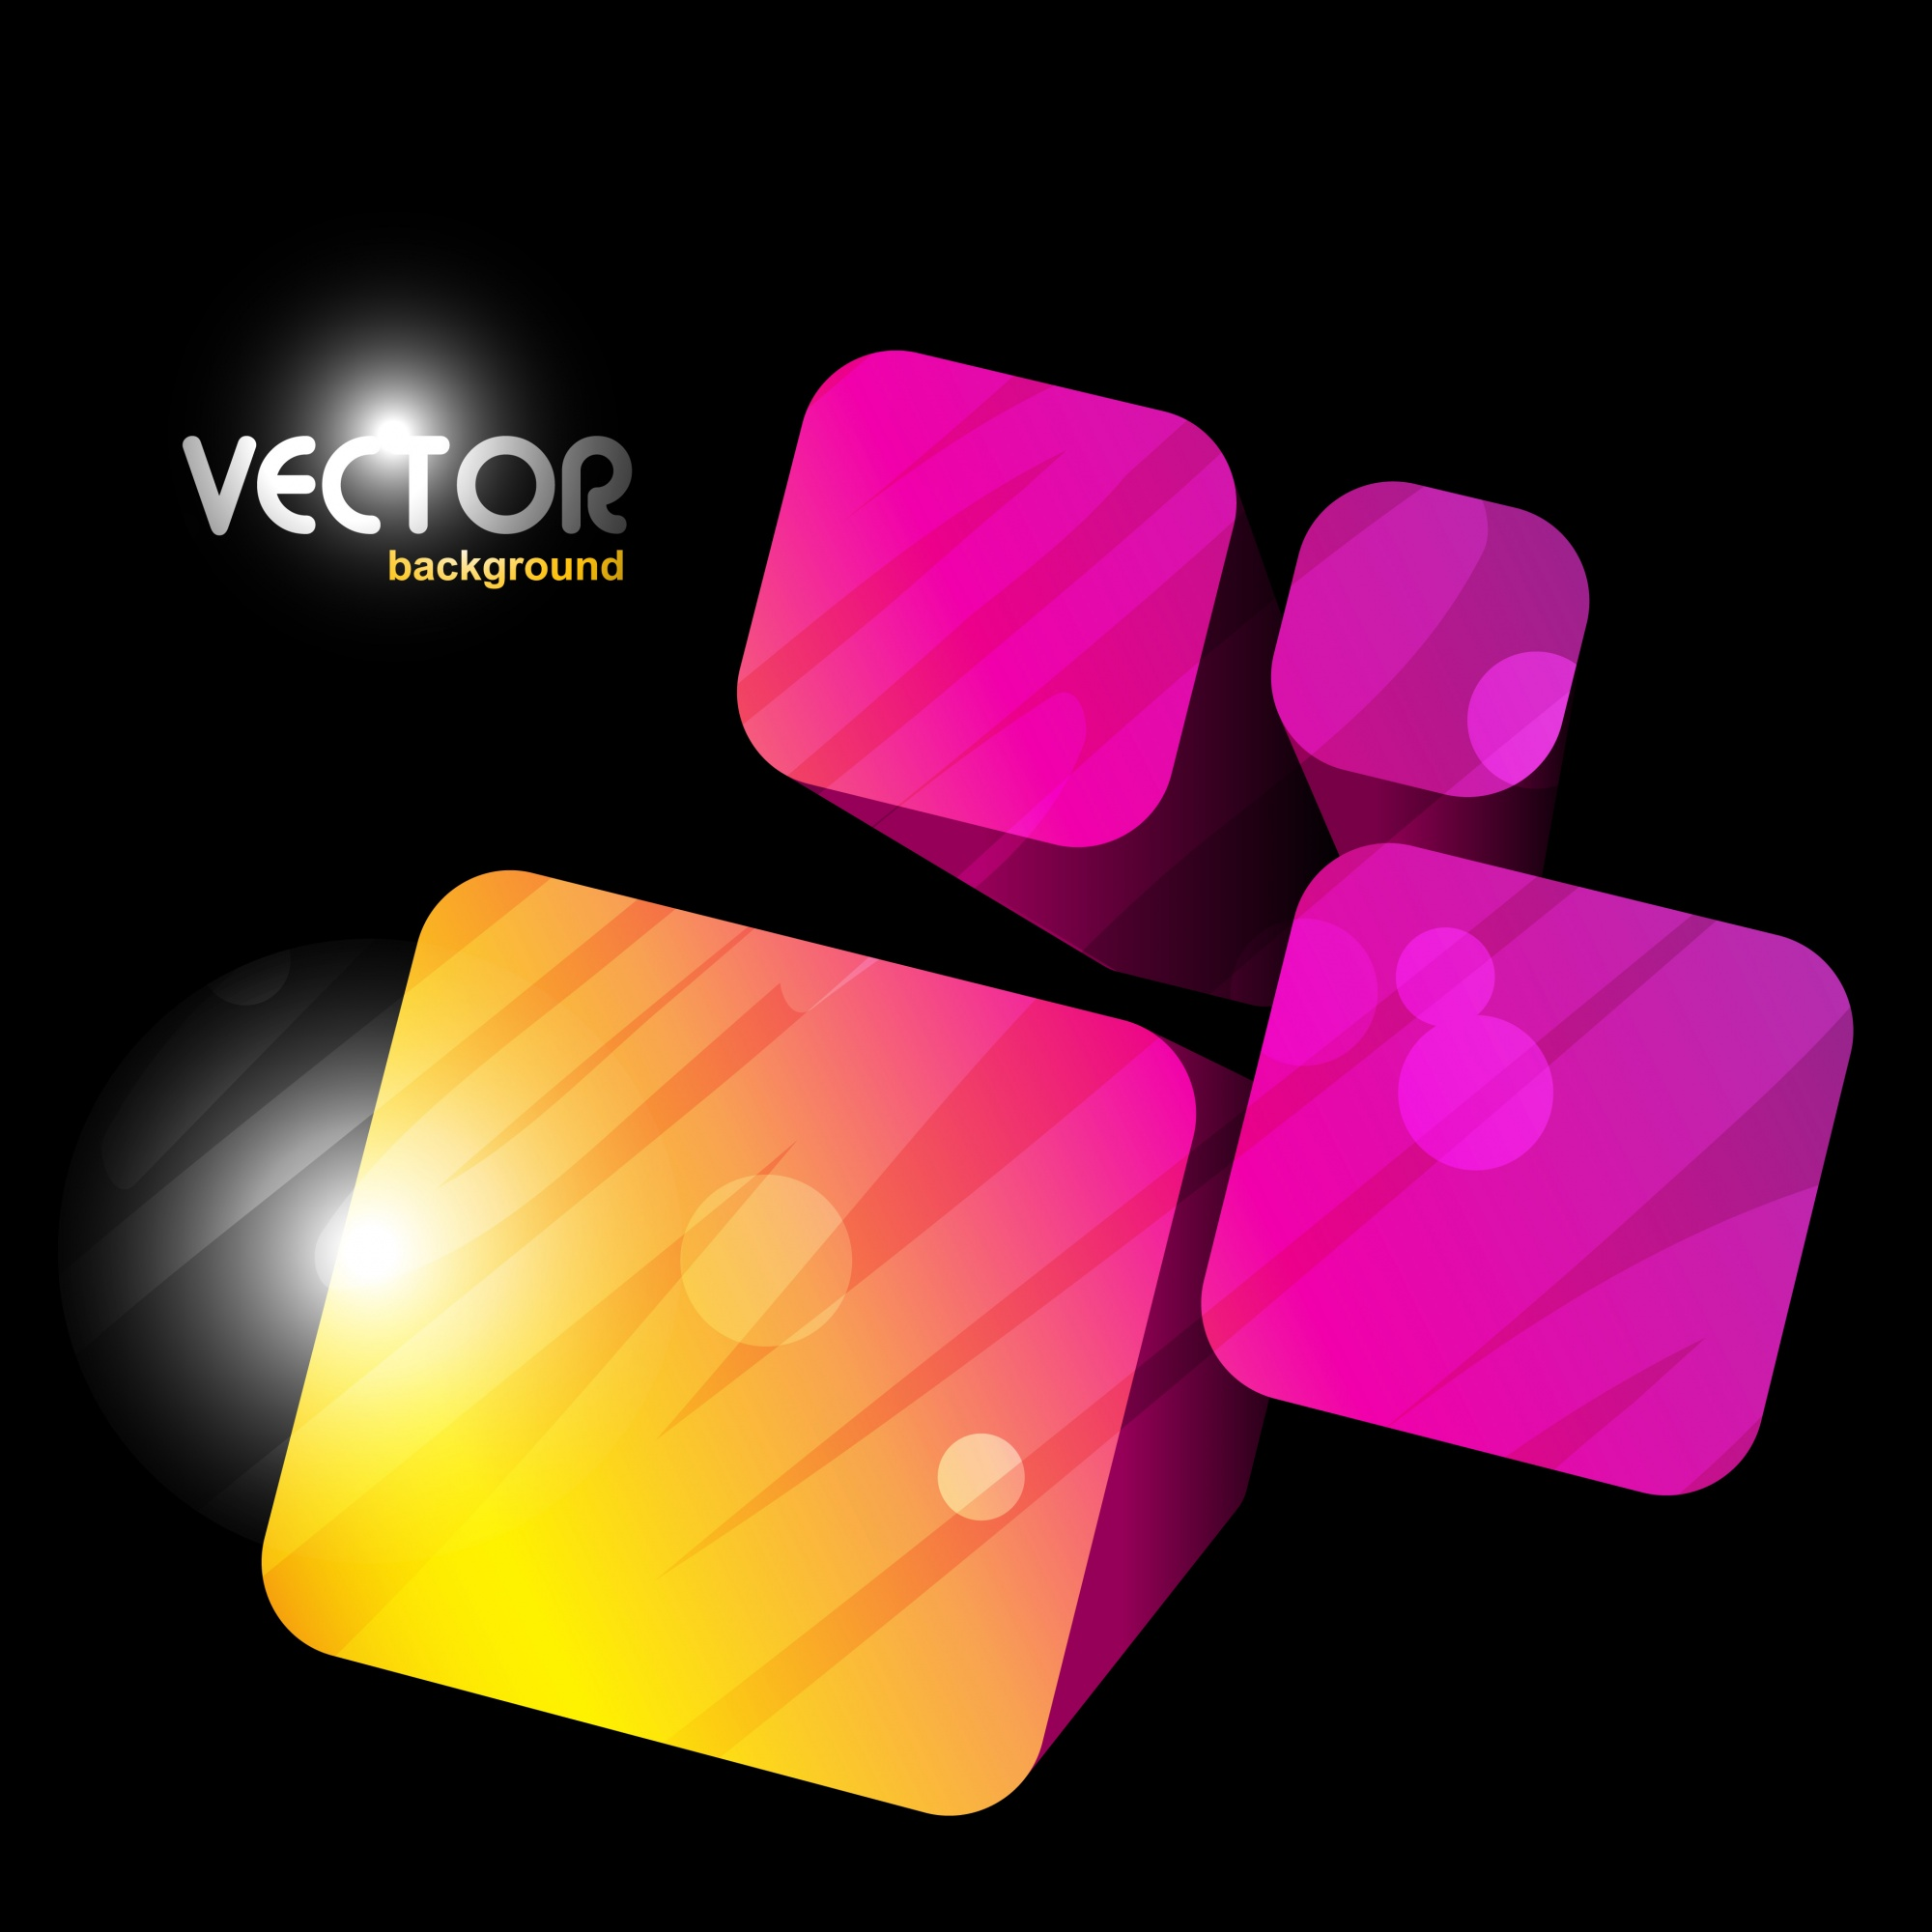 Abstract colorful background with 3d cubes